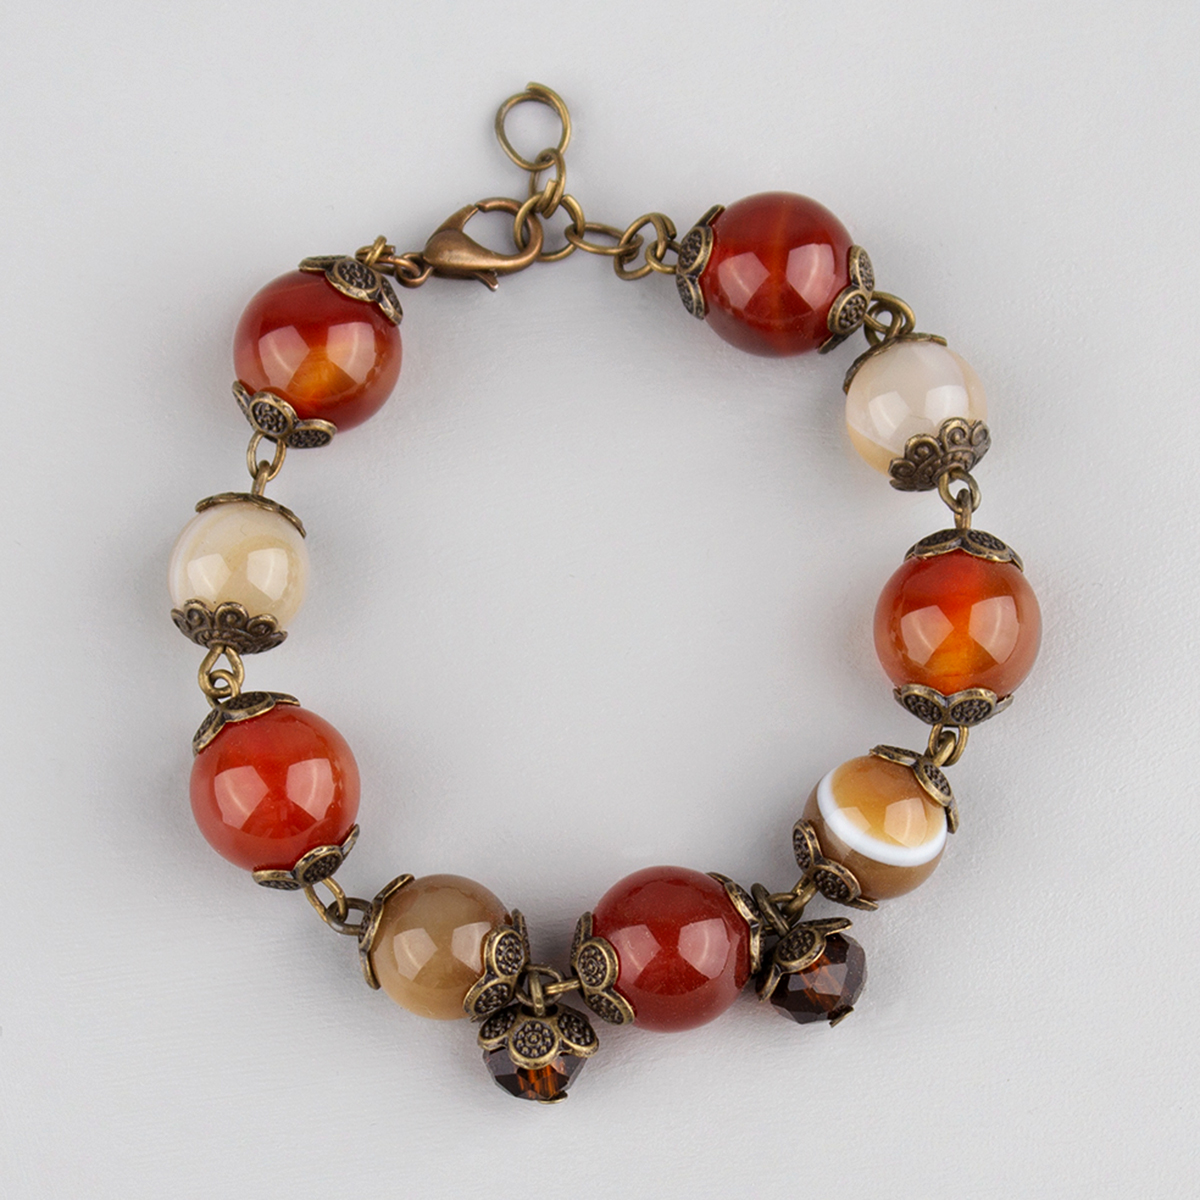 Bracelet with Carnelian and brown agate